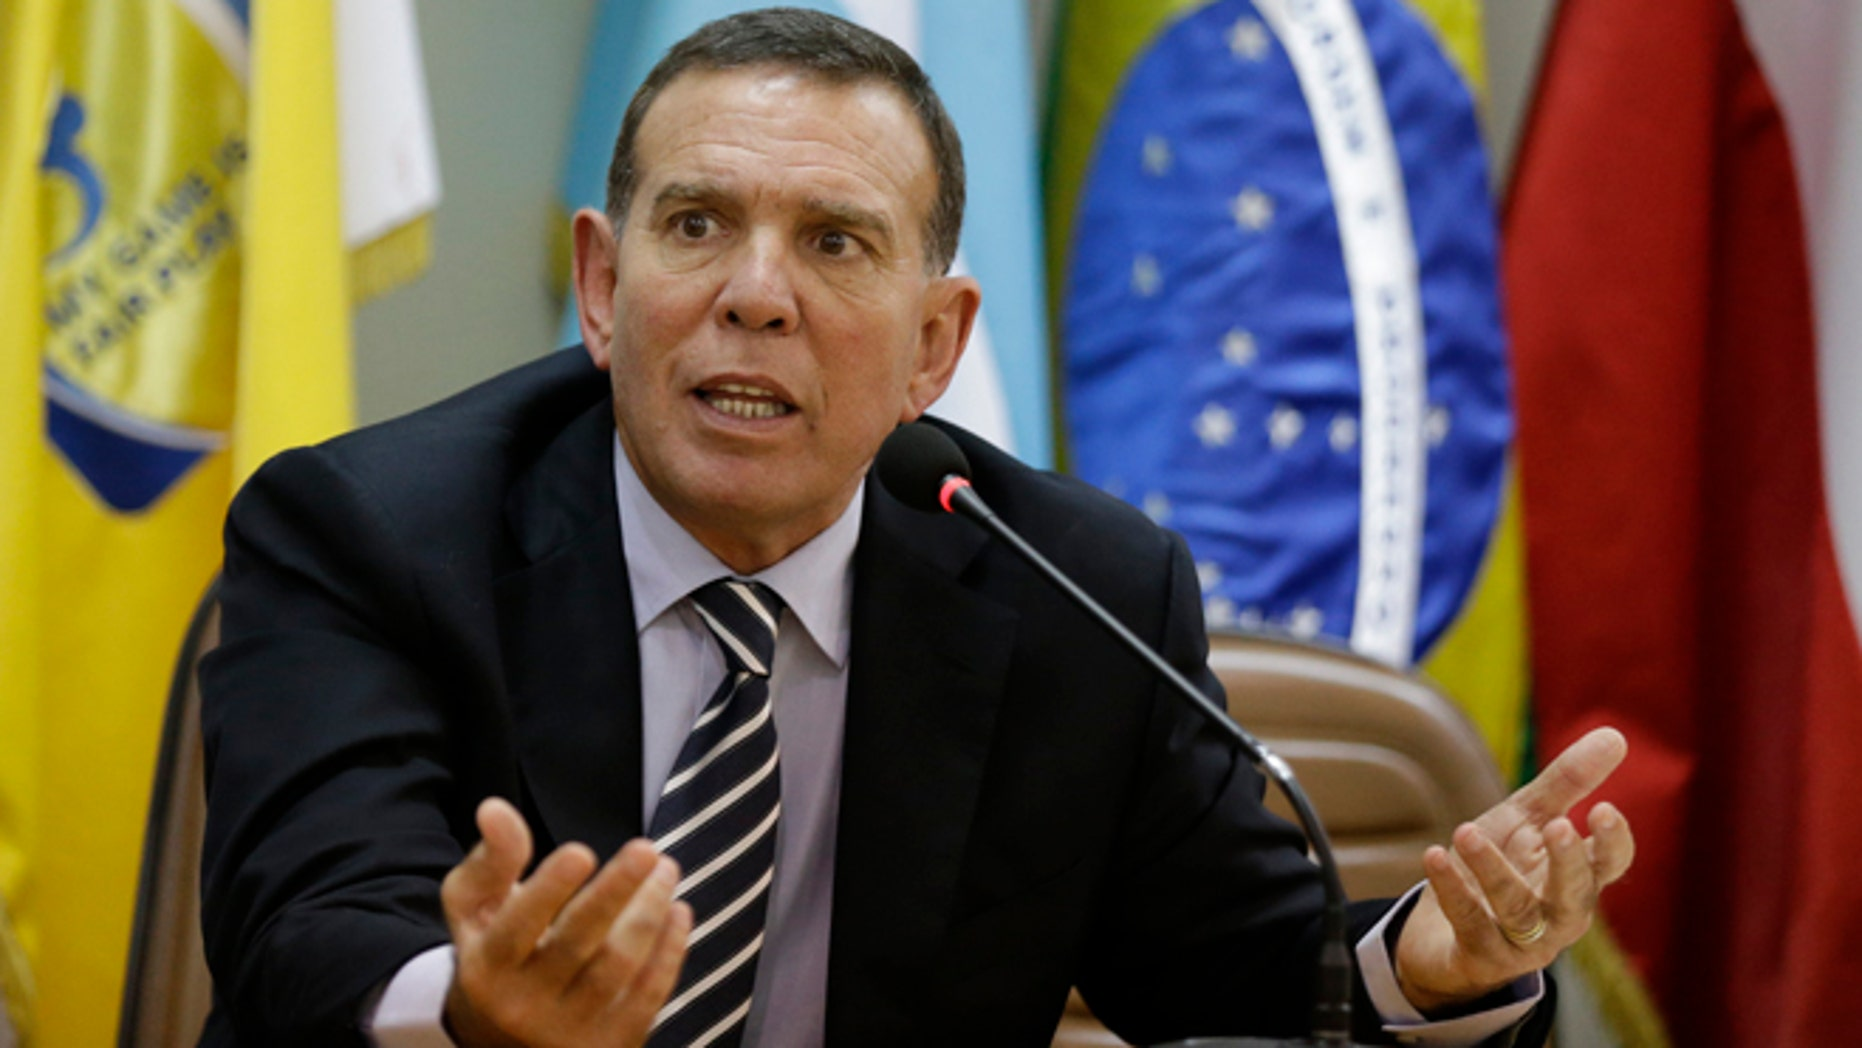 FILE - In this May 21, 2015 file photo, CONMEBOL President Juan Angel Napout talks during a press conference in Asuncion, Paraguay. Napout was arrested on Thursday, Dec. 3, 2015, in a pre-dawn raid at a luxury hotel in Switzerland as part of the U.S. Department of Justice's widening bribery case that has shaken world soccer's scandal-hit governing body, FIFA. The Swiss justice ministry says, Napout who is also a FIFA vice president, is opposing his extradition to the U.S. (AP Photo/Jorge Saenz, File)